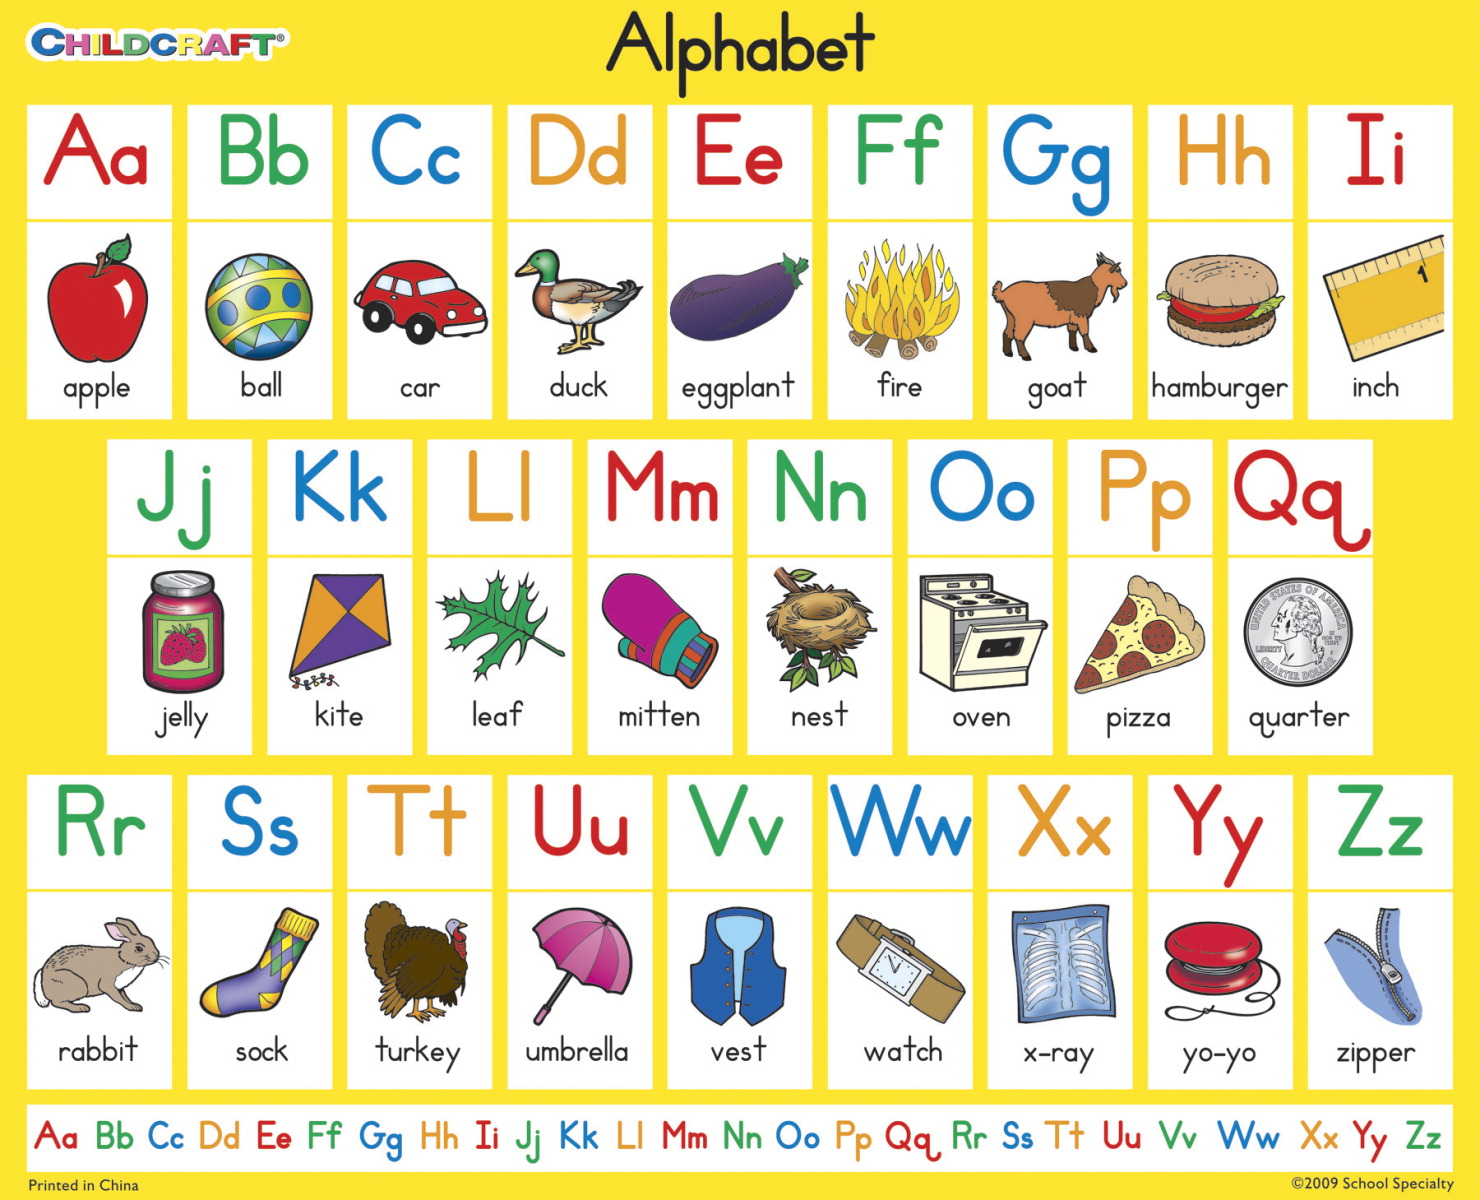 Childcraft Student Sized English Alphabet Charts, 11 x 9 Inches, Set of 25